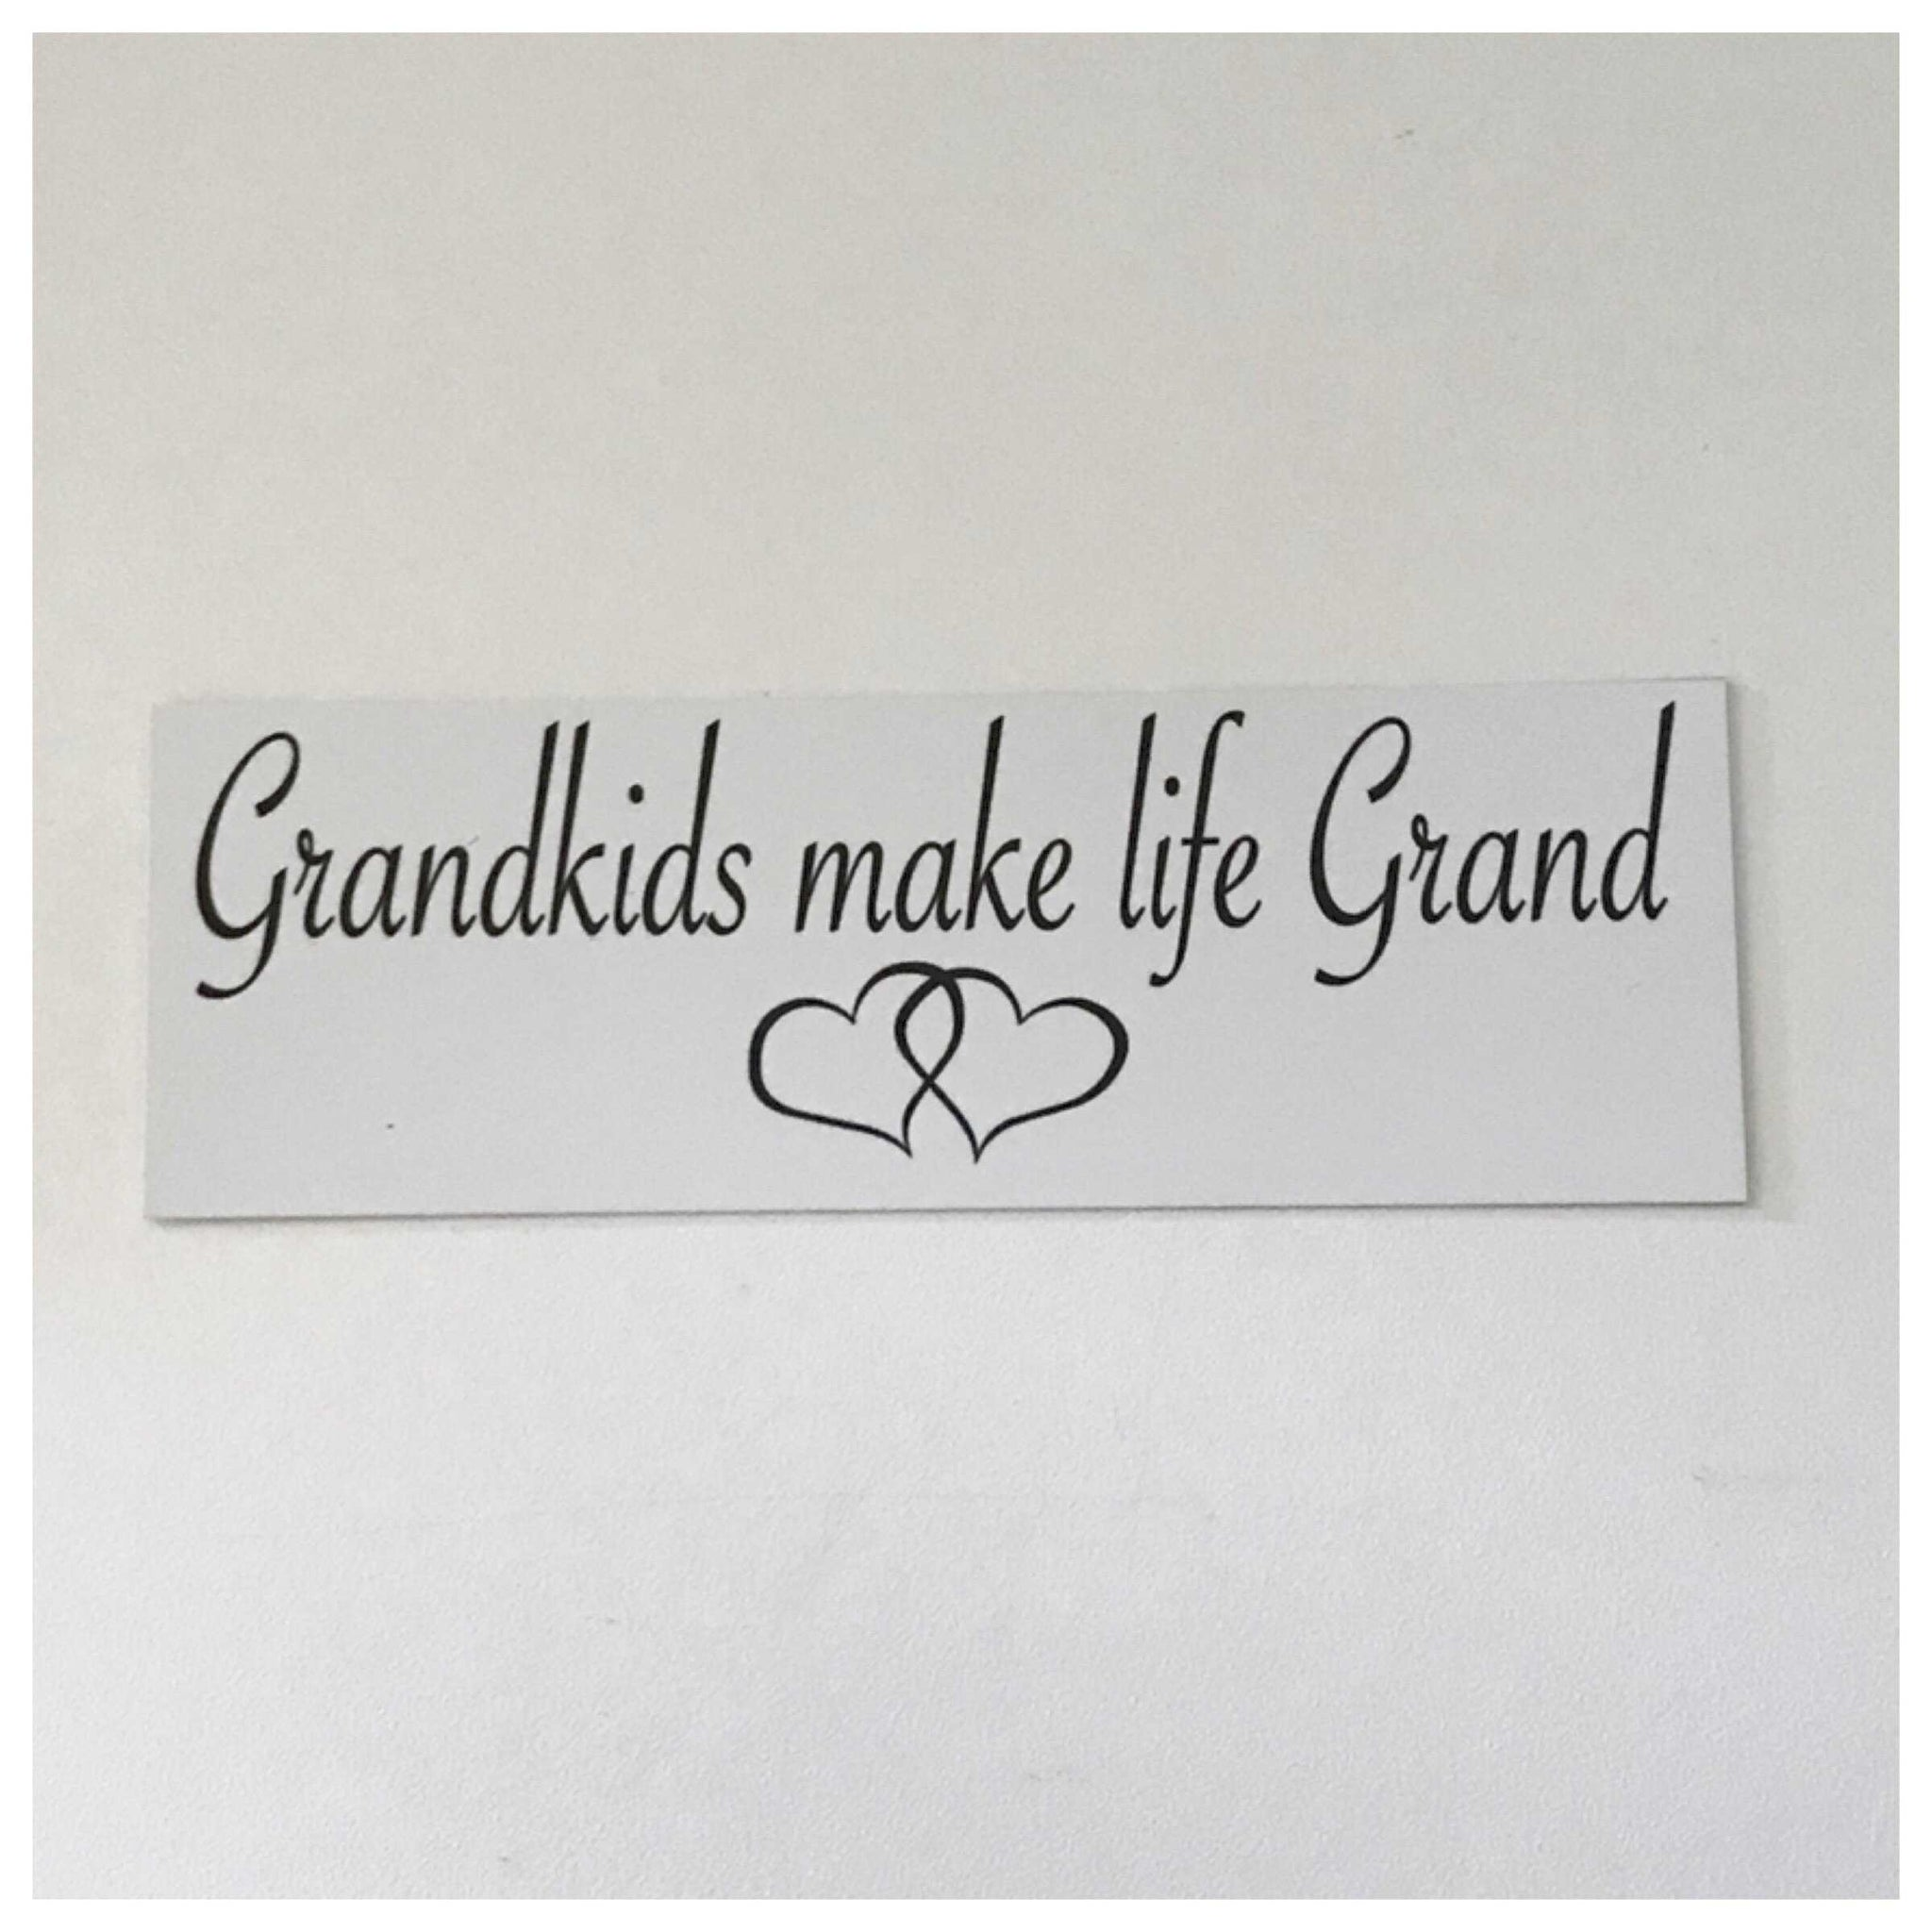 Grandkids Make Life Grand Grandparent Sign Wall Plaque Or Hanging Plaques & Signs The Renmy Store